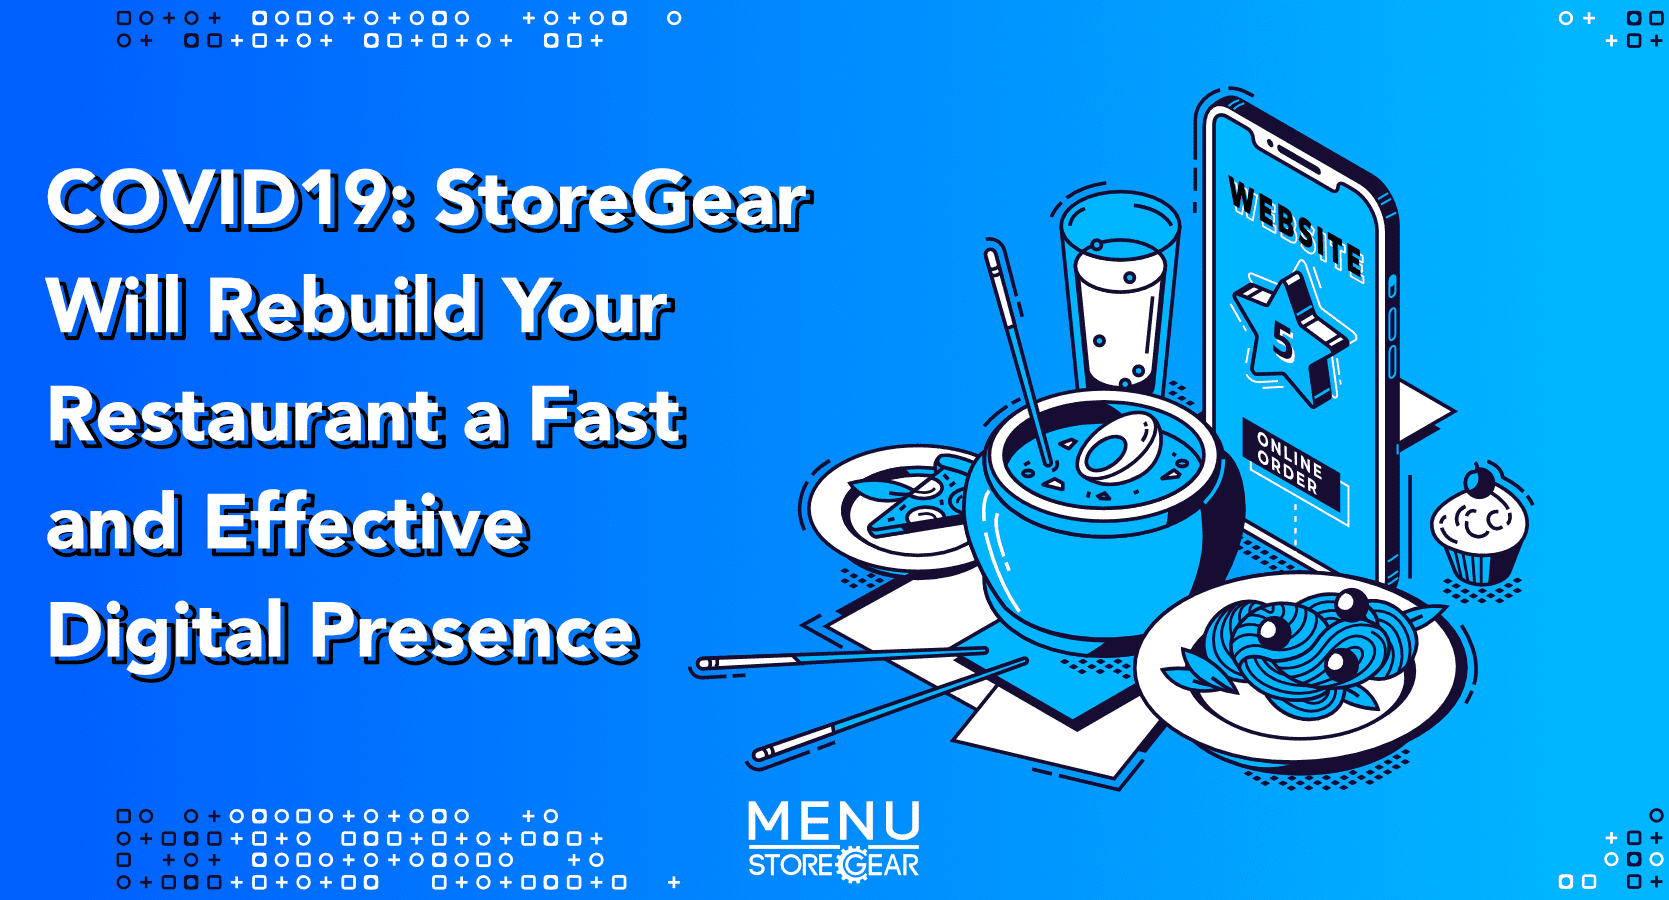 COVID19: StoreGear Will Rebuild Your Restaurant a Fast and Effective Website